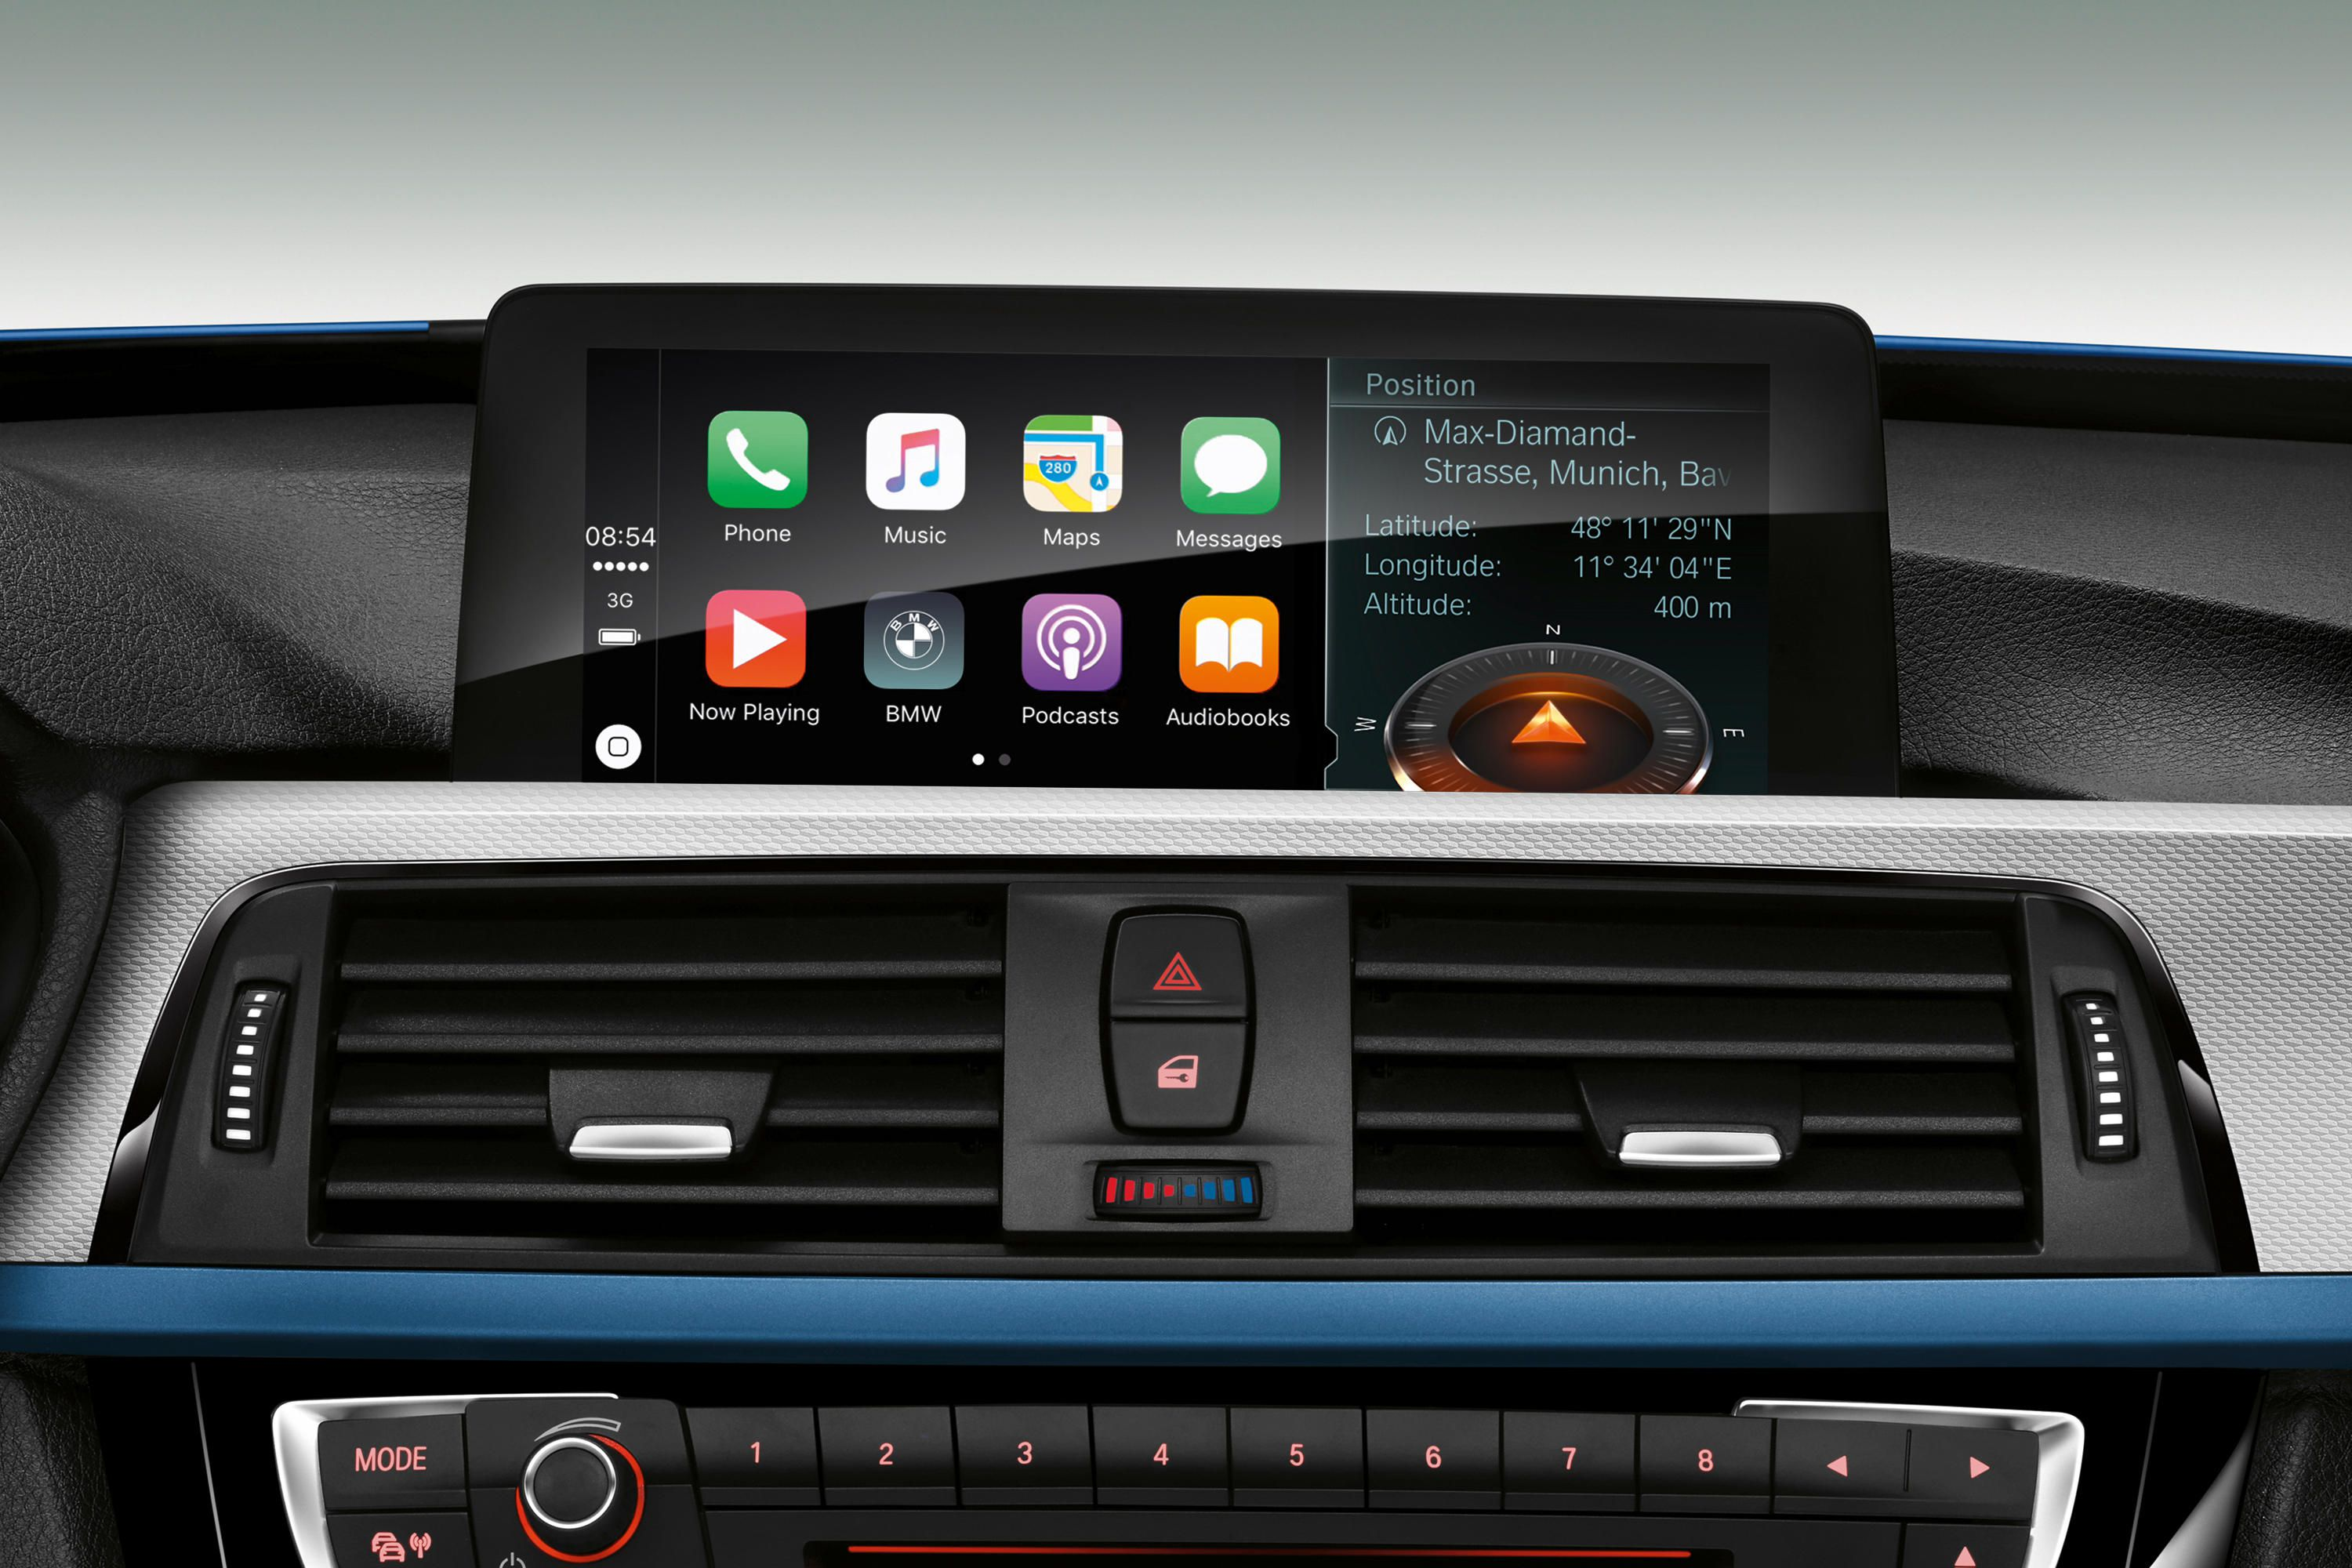 Bmw Apple Carplay Module For Nbt Cic Head Units 2013 2016 Installa Code M